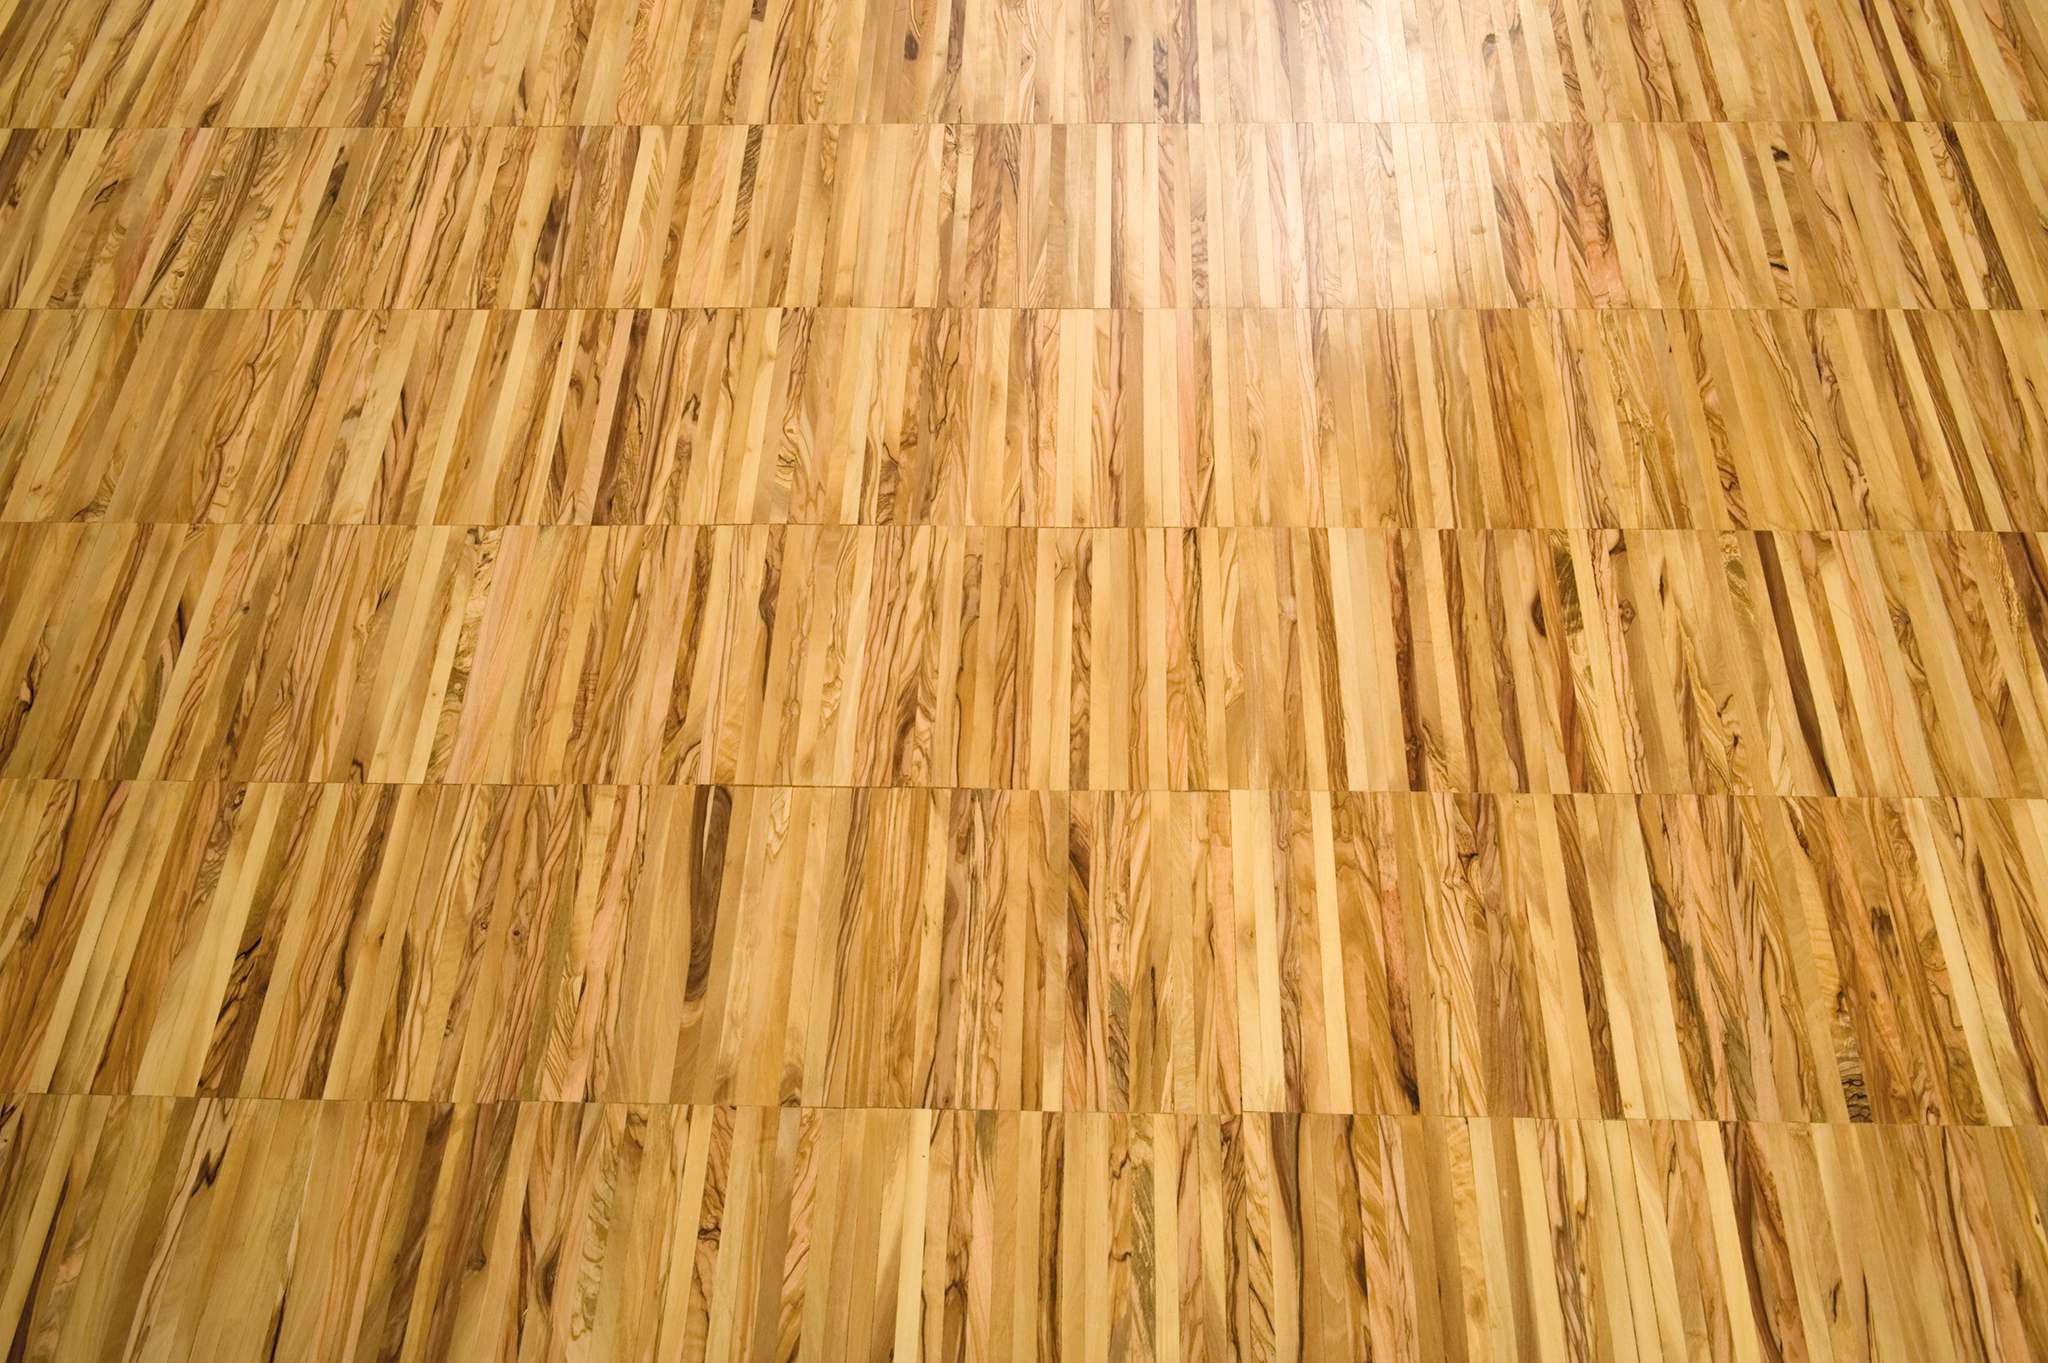 Olive wood parquet industry V14i